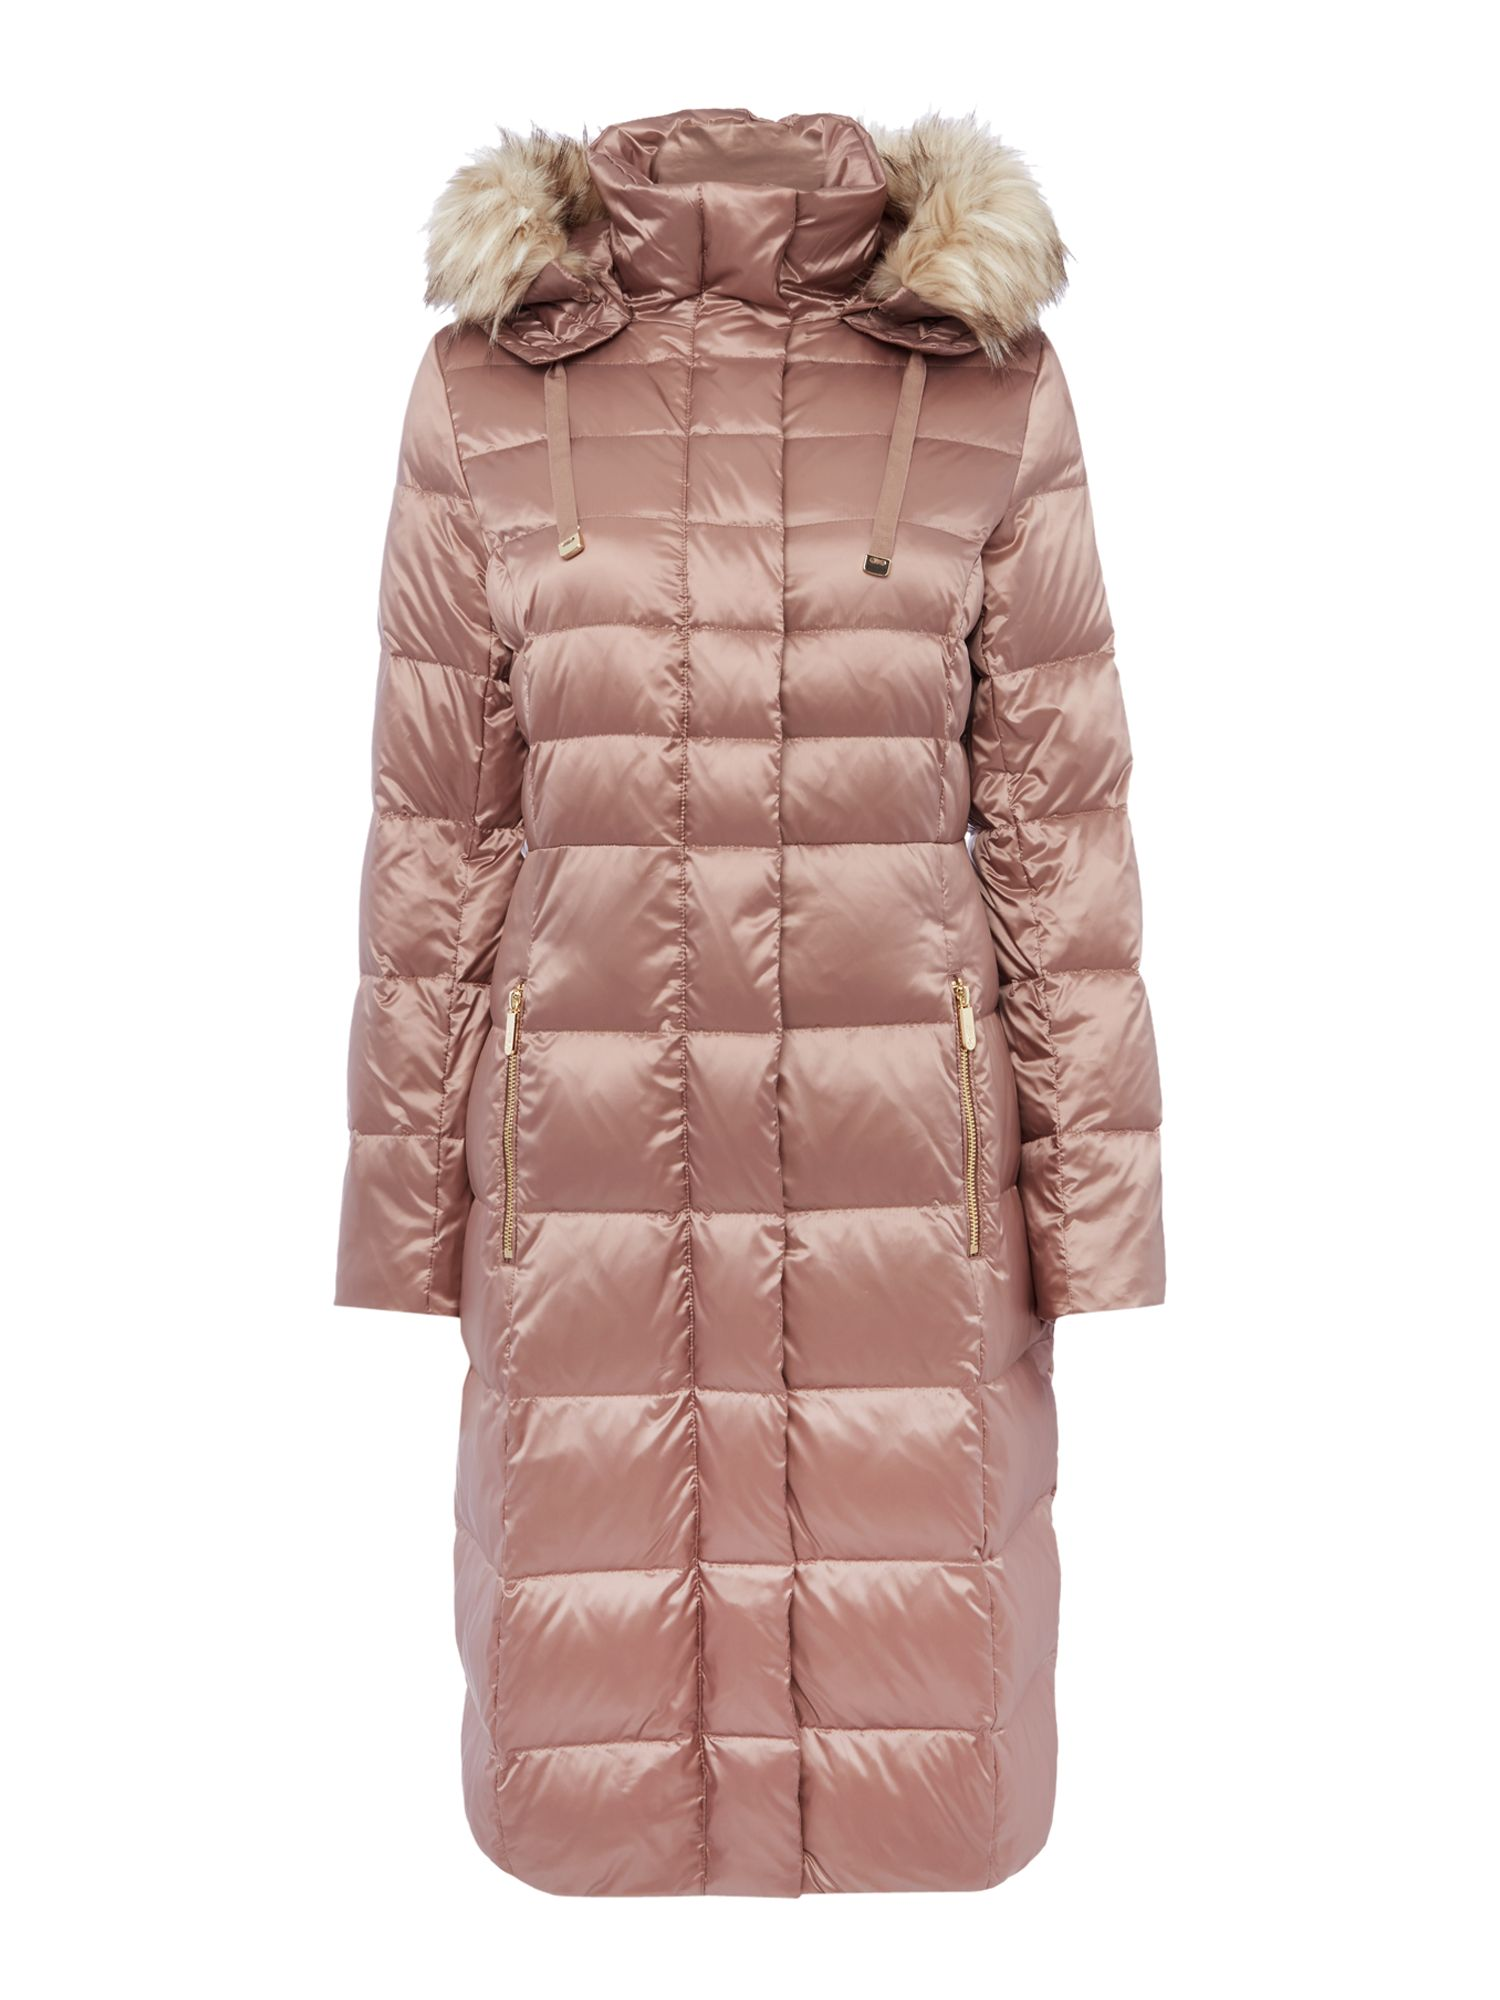 Eliza J Padded Down Coat with Faux Fur Hood, Pink